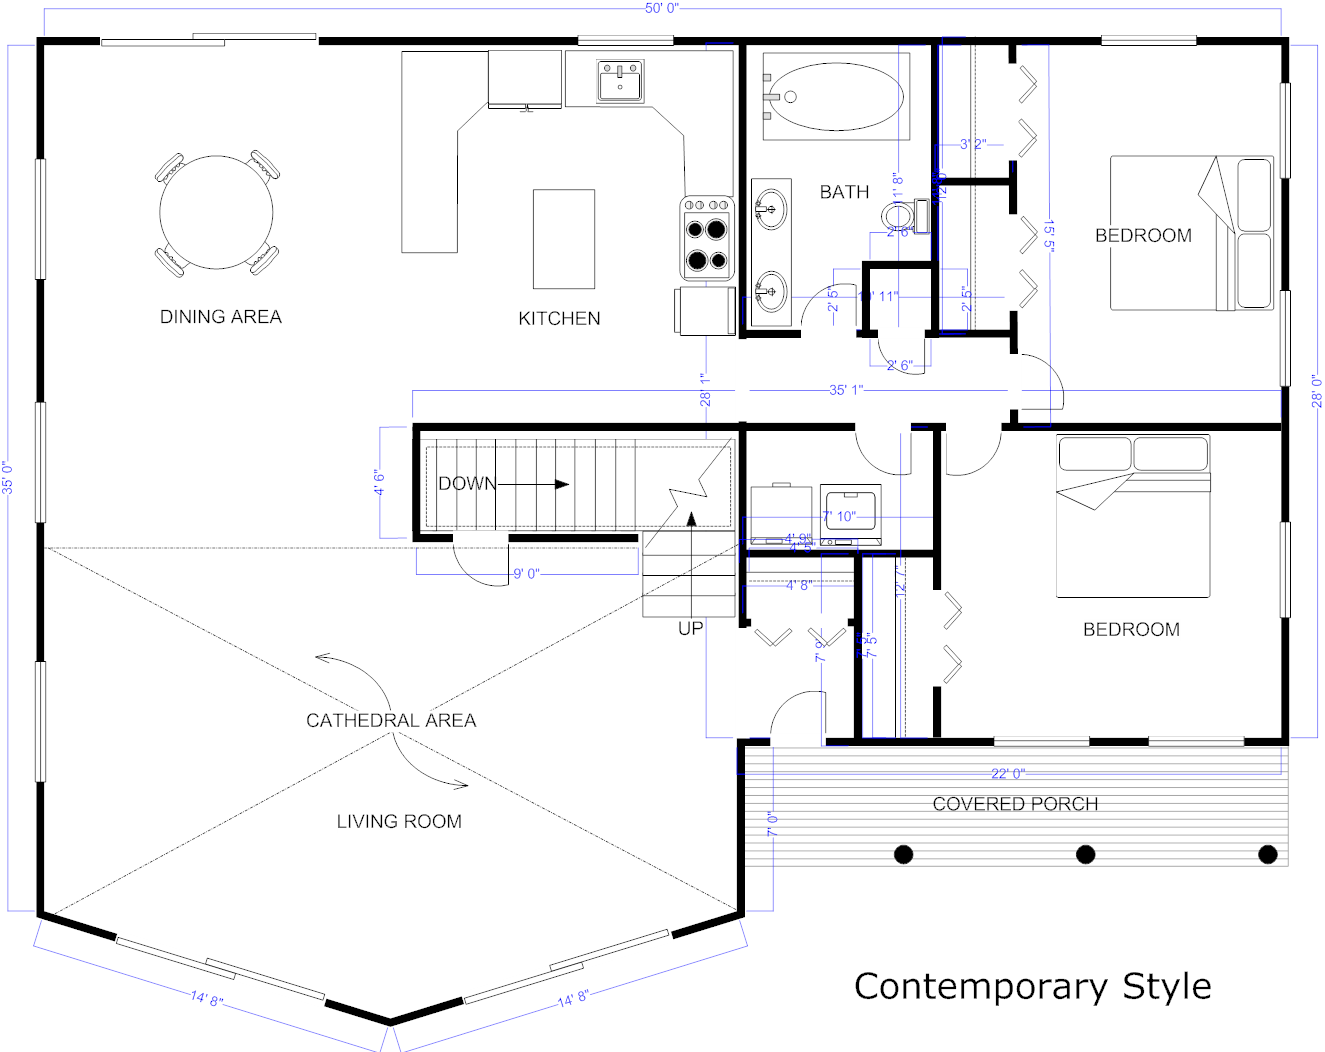 blueprint maker free download online app On house blueprint creator